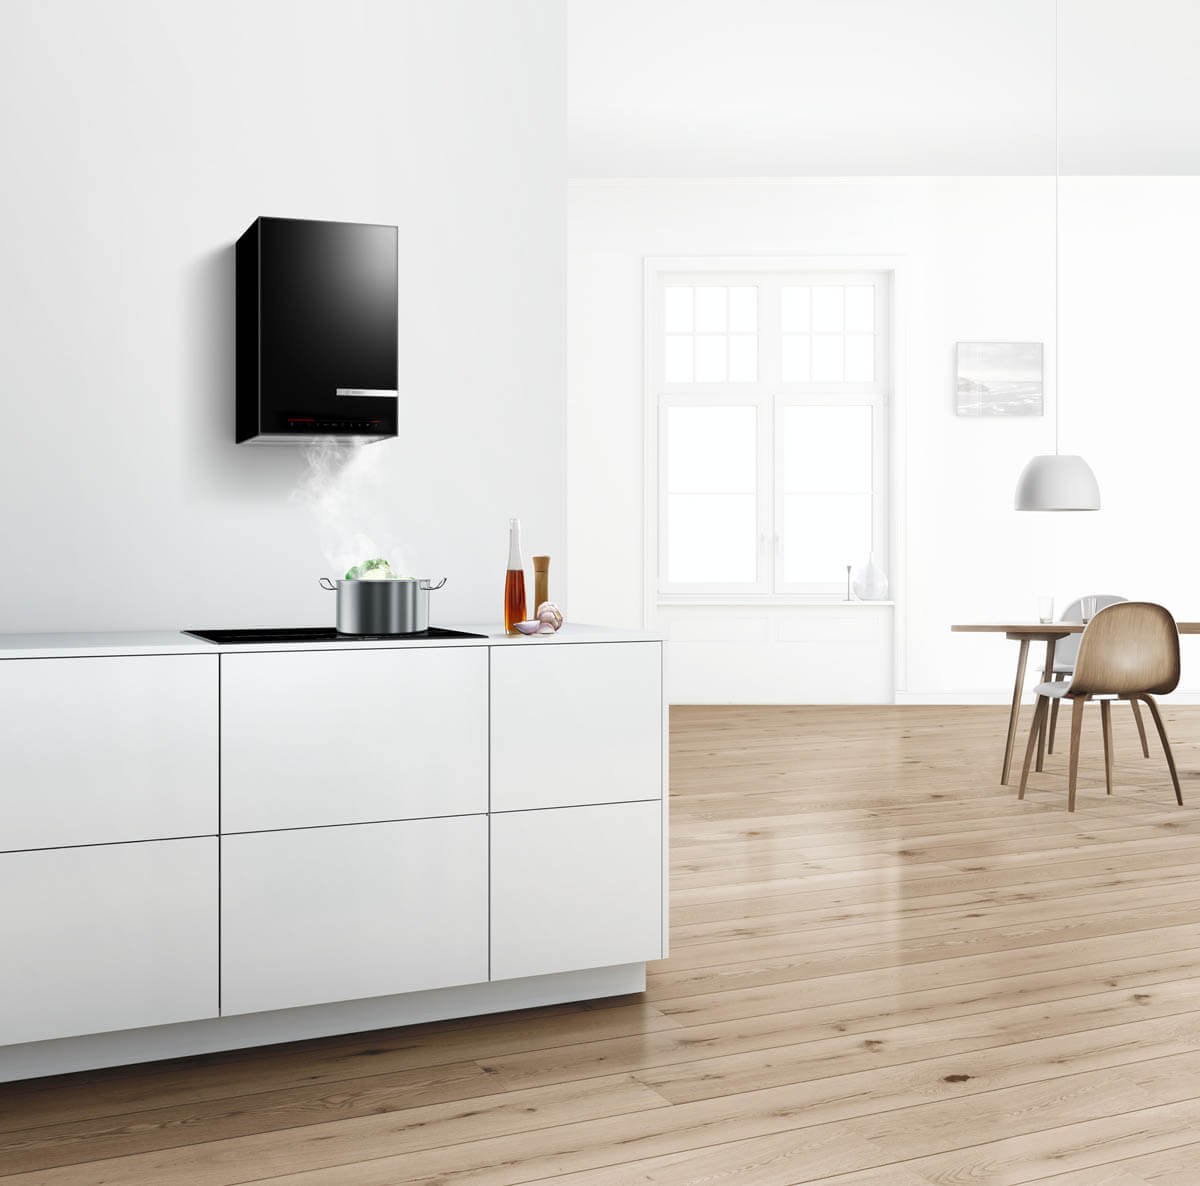 bosch k chenger te bilder infos zu back fen kochfeldern dampfgarer geschirrsp ler. Black Bedroom Furniture Sets. Home Design Ideas